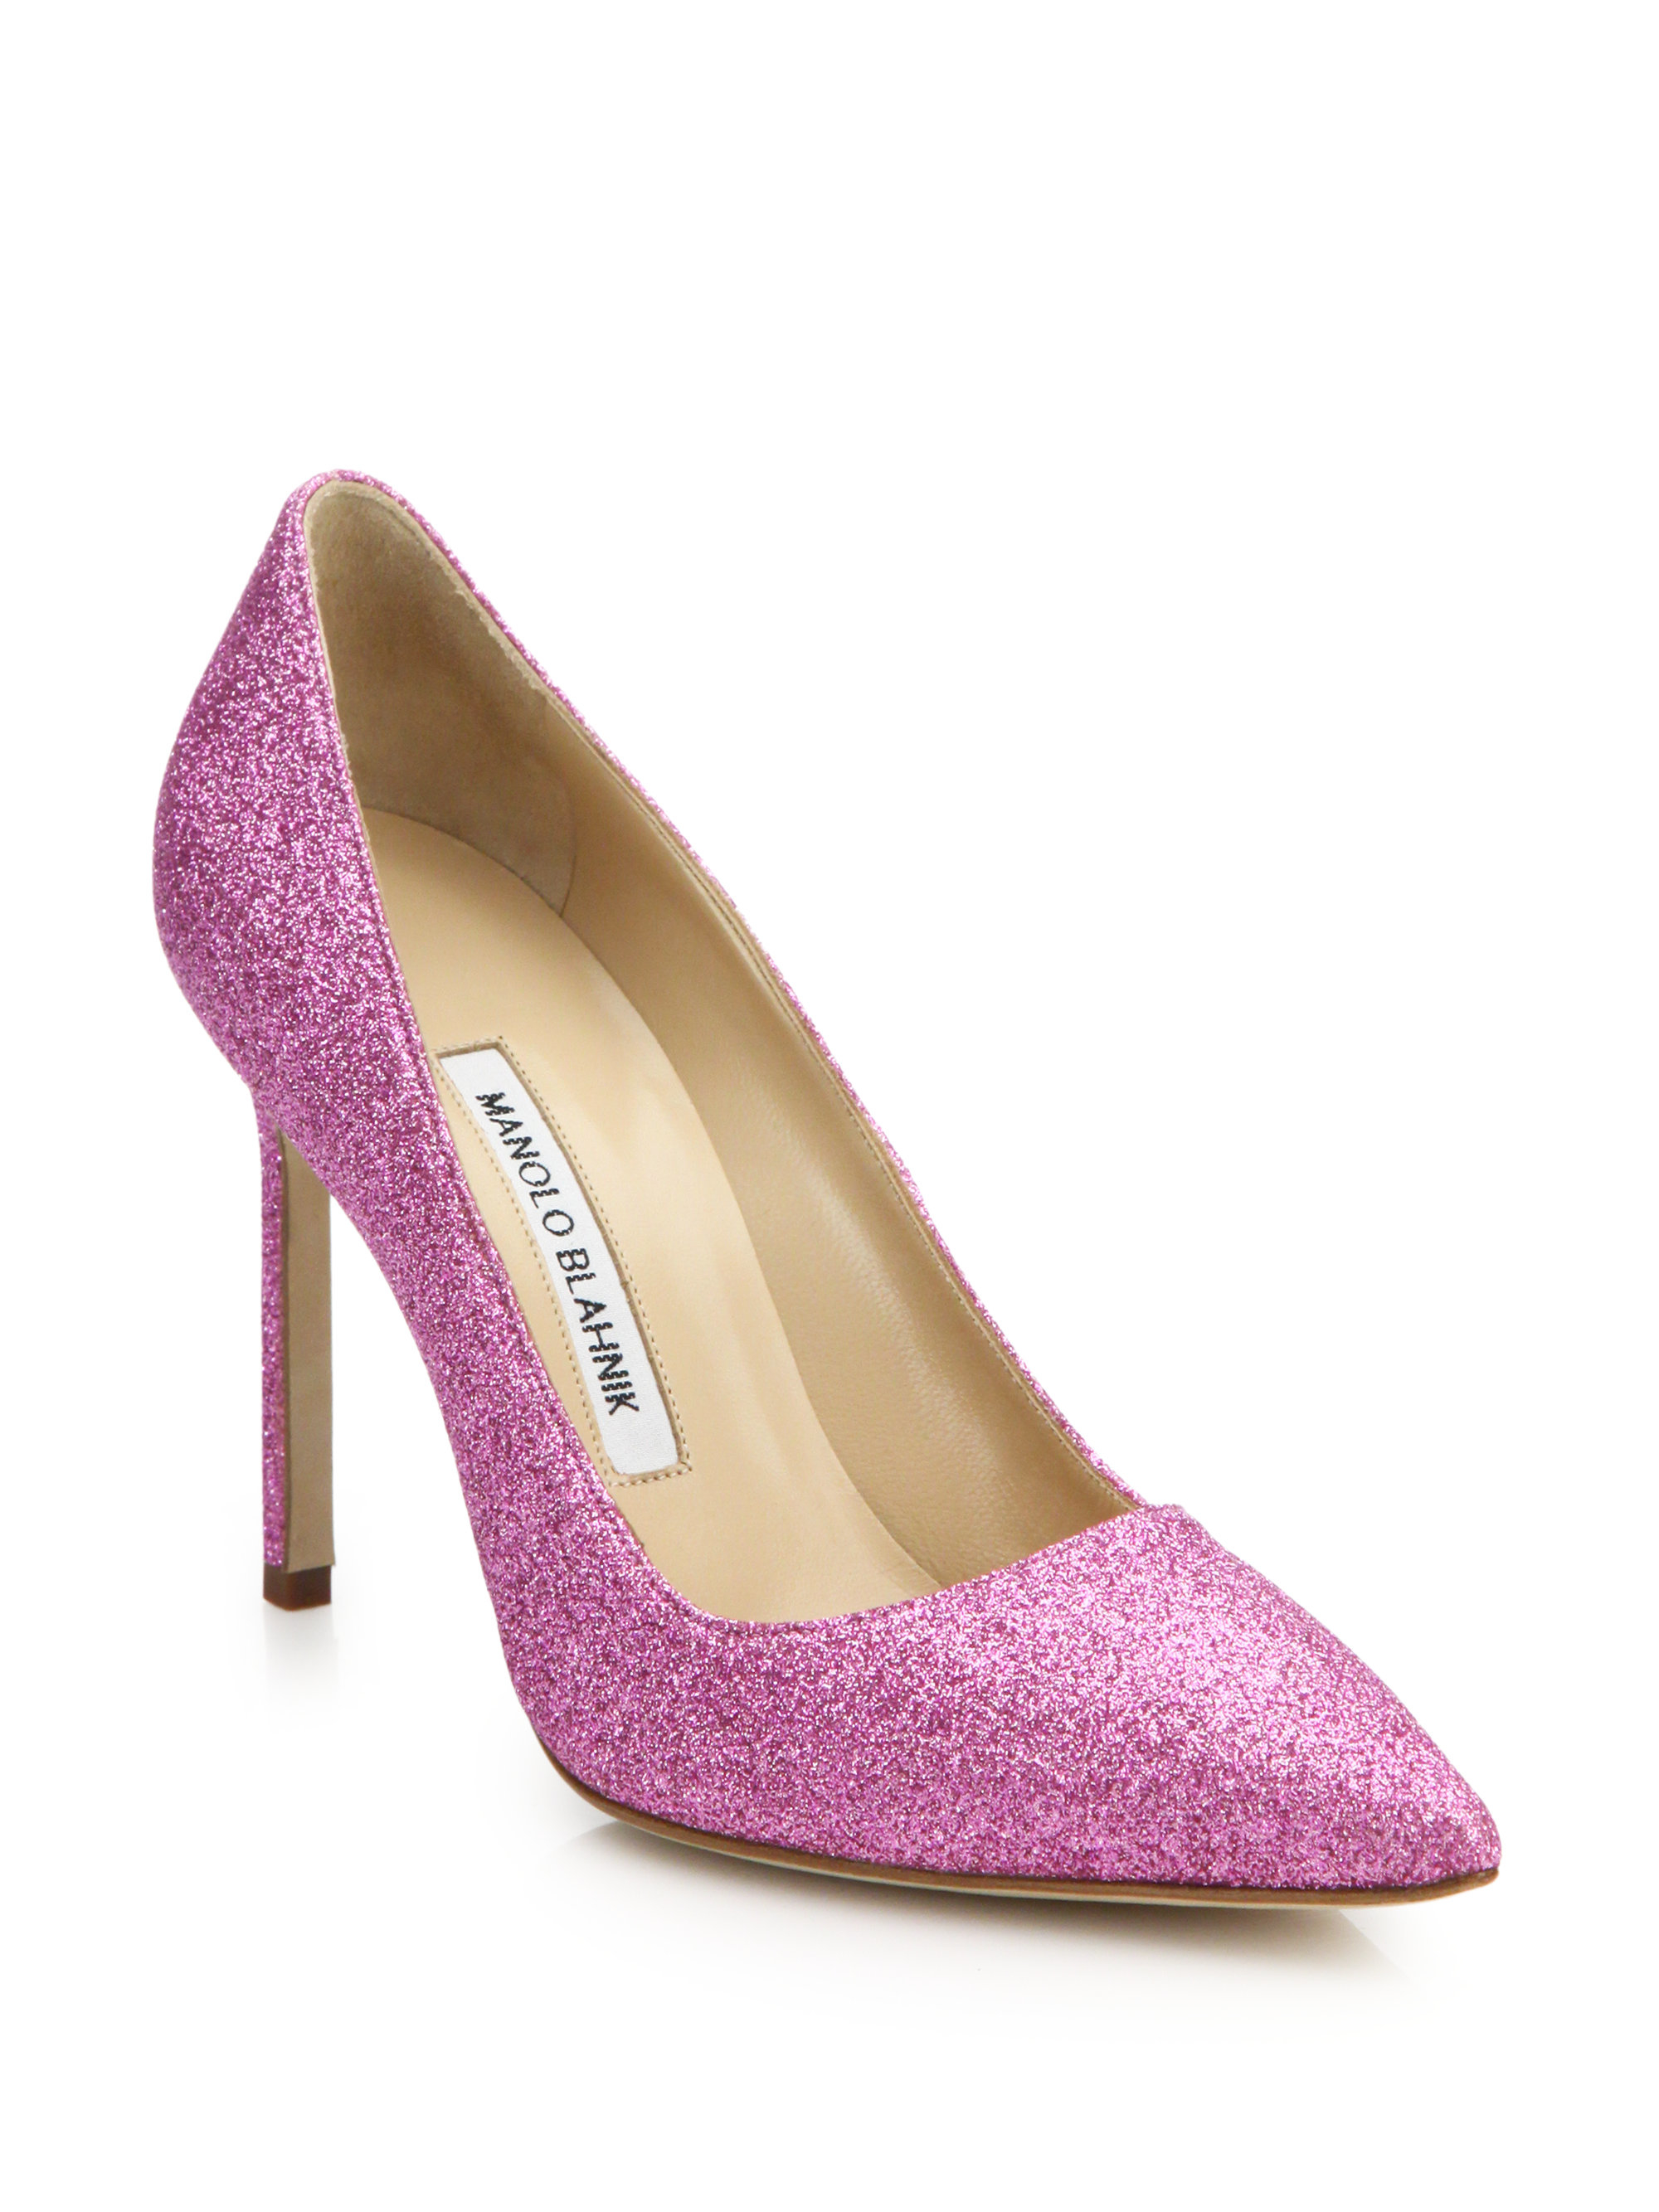 bad751dfb1 Manolo Blahnik Bb 105 Glitter Pumps in Pink - Lyst